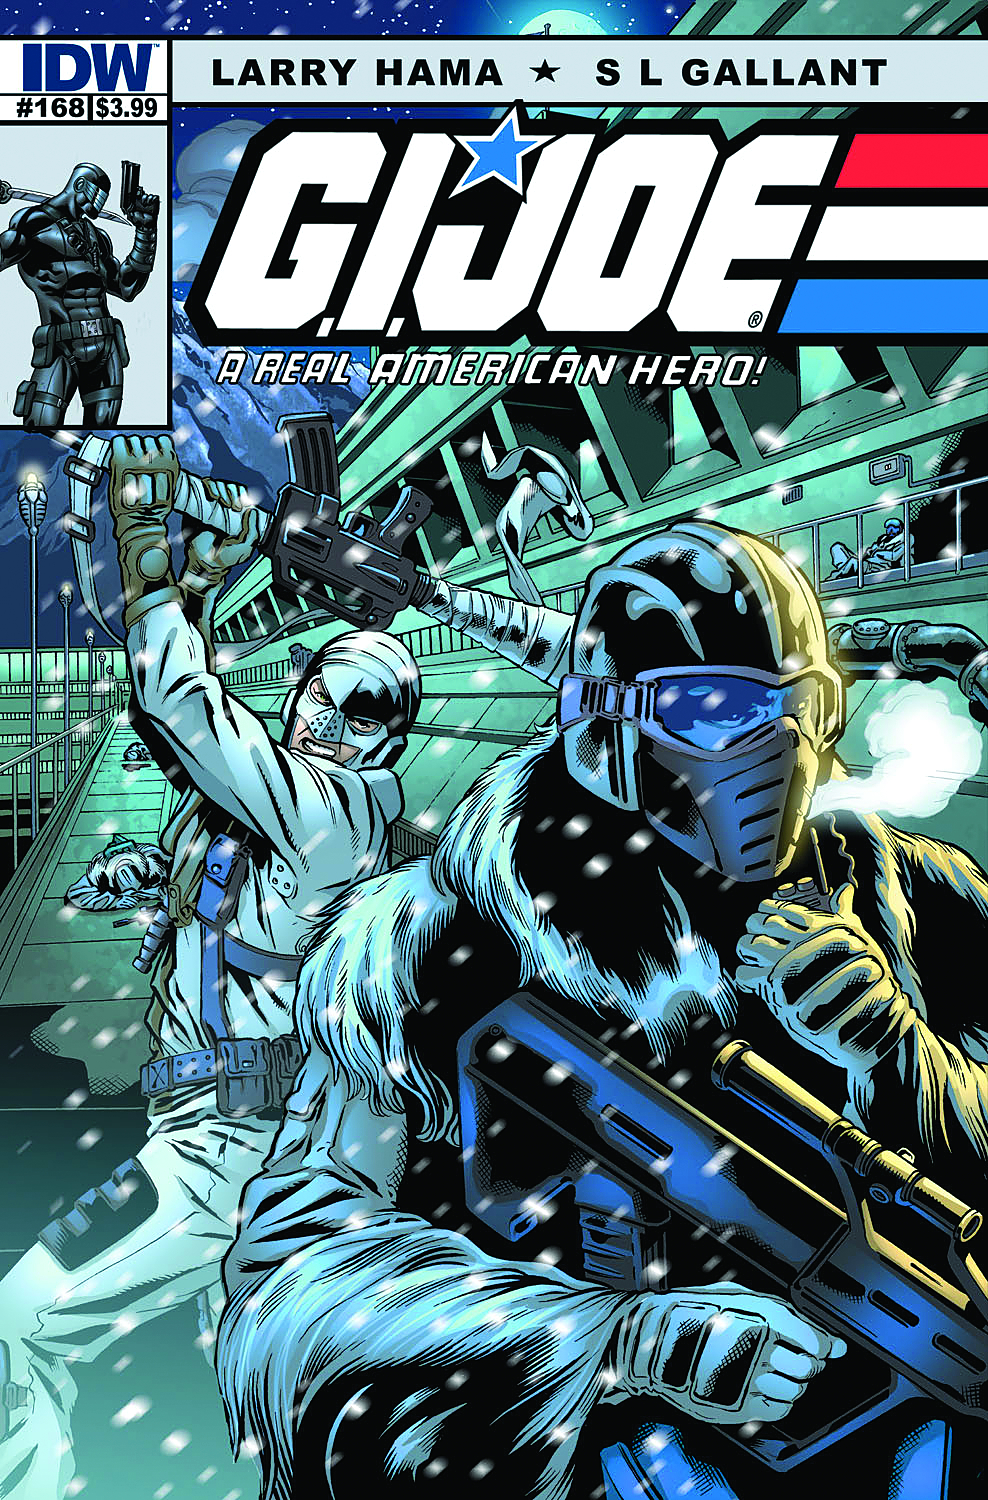 GI JOE A REAL AMERICAN HERO #168